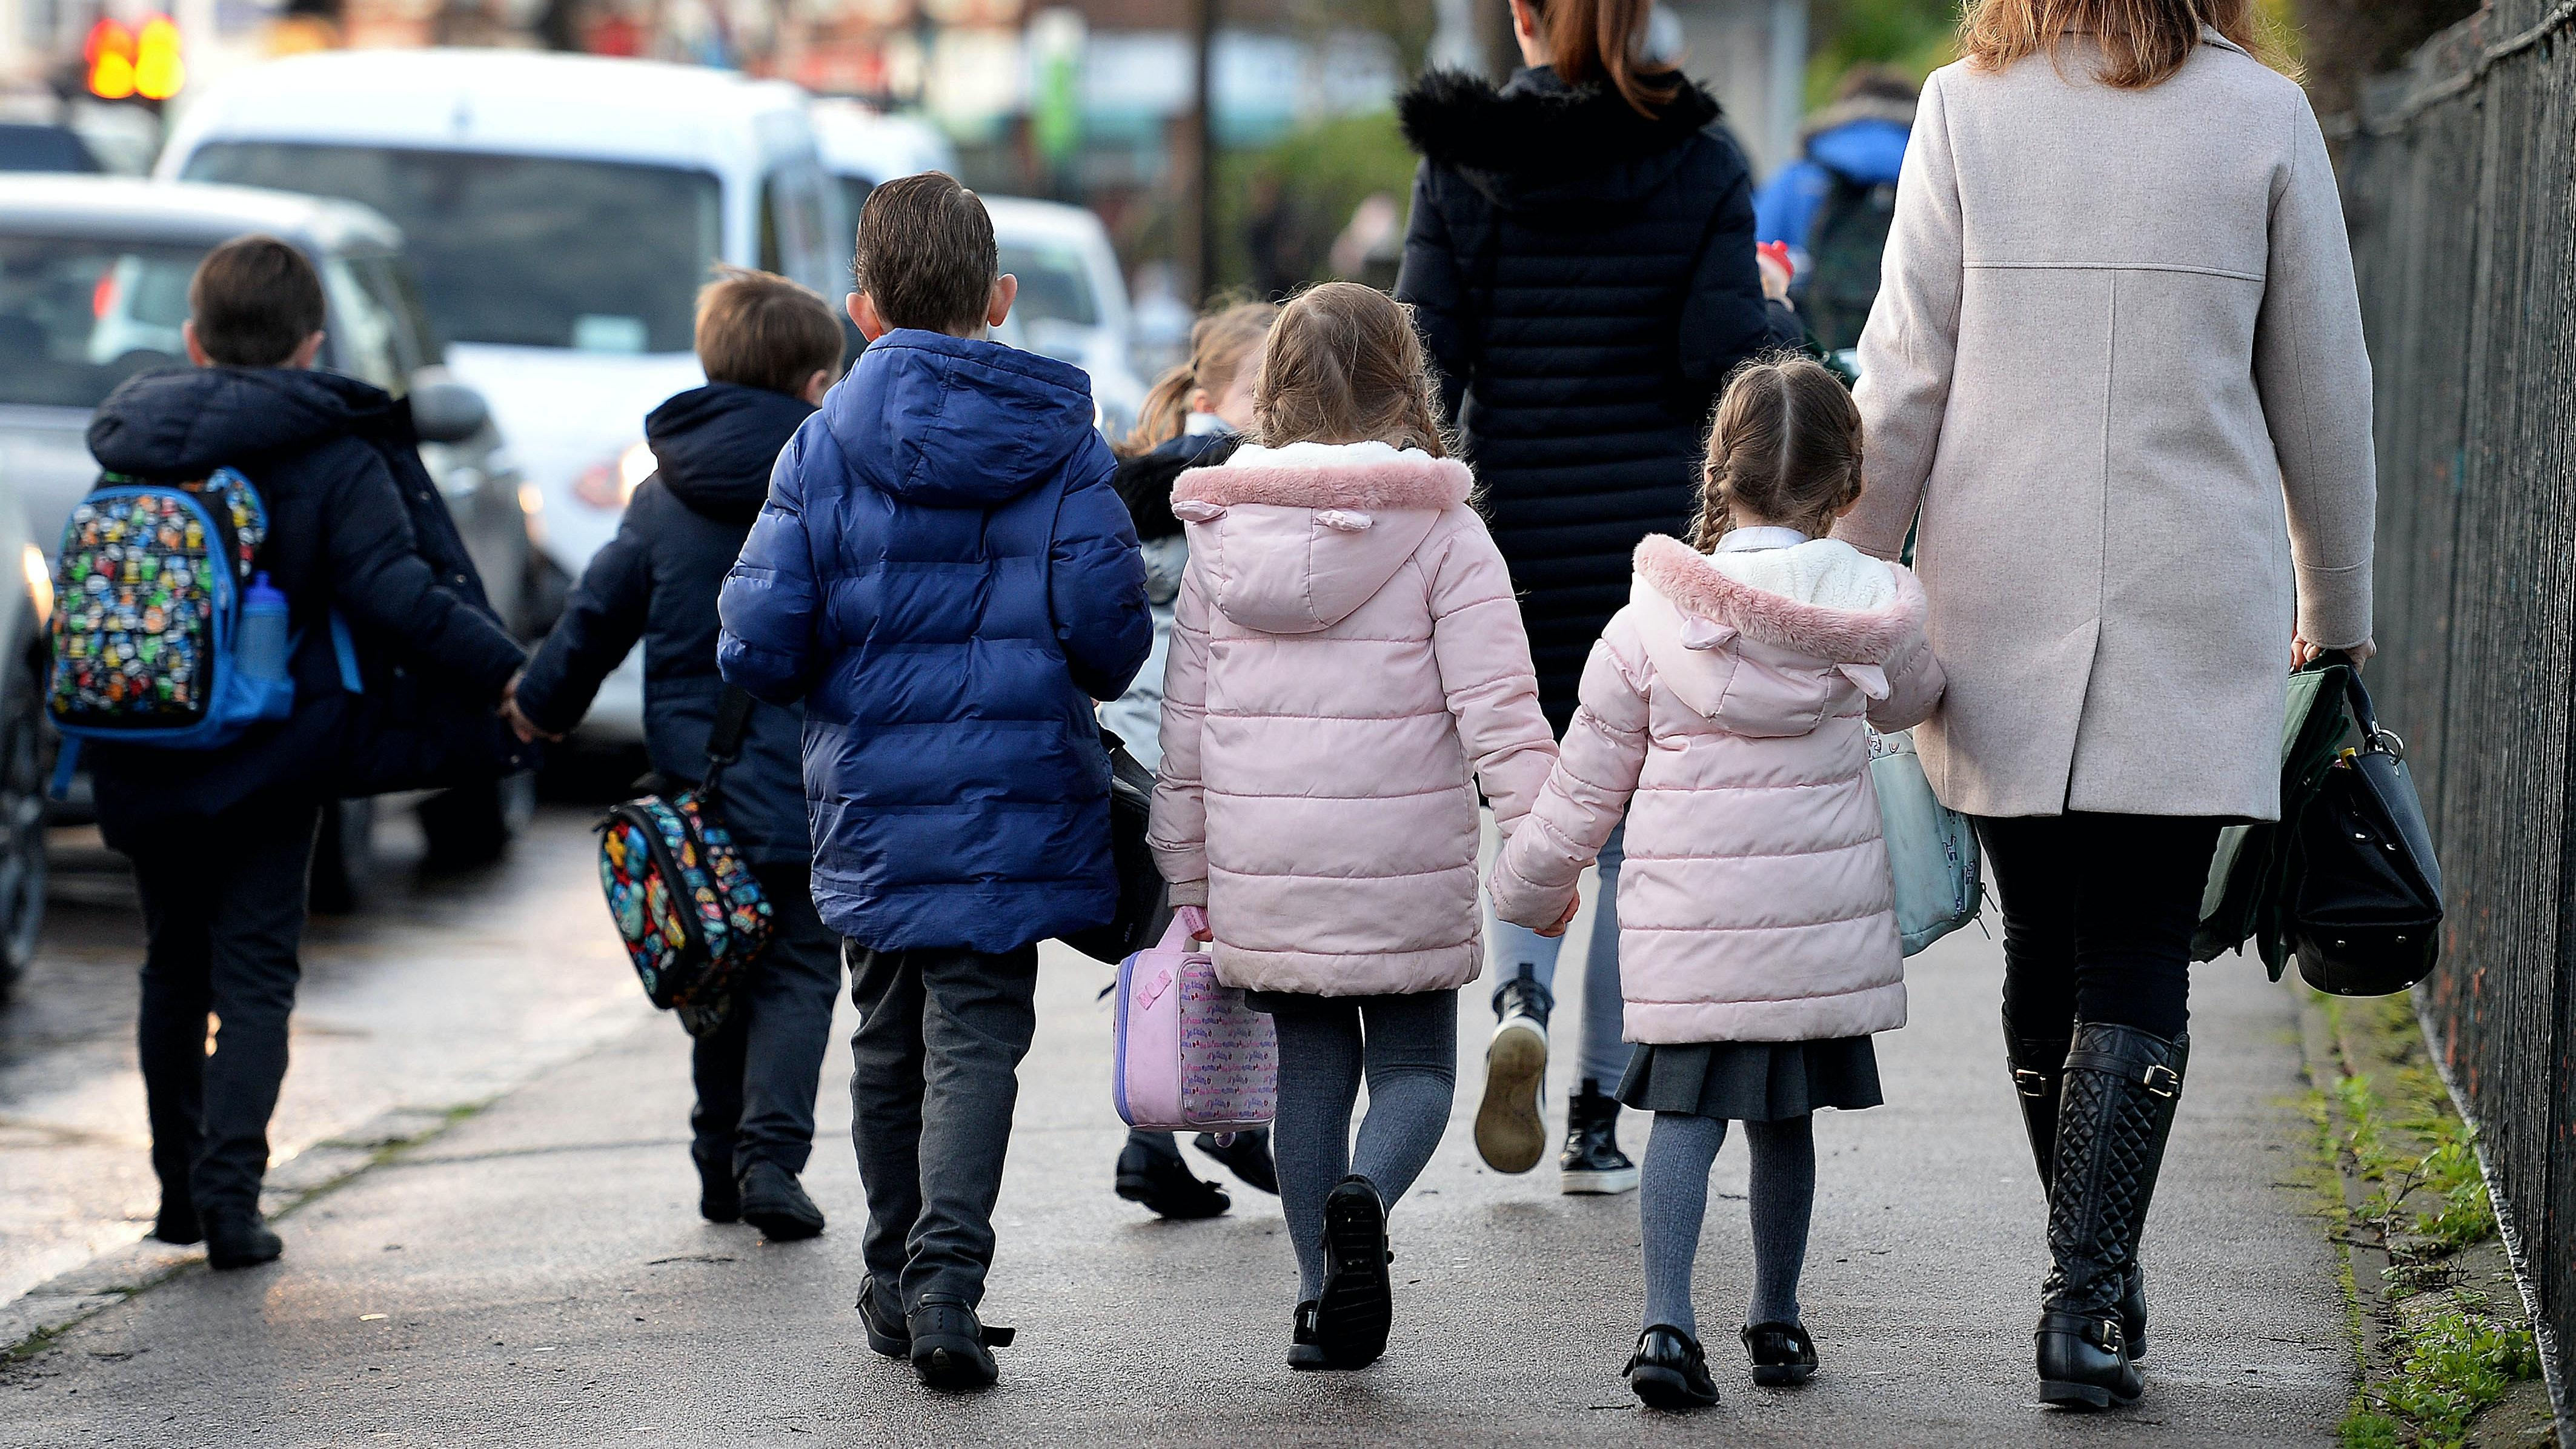 Parents urged to keep childhood vaccination appointments during lockdown